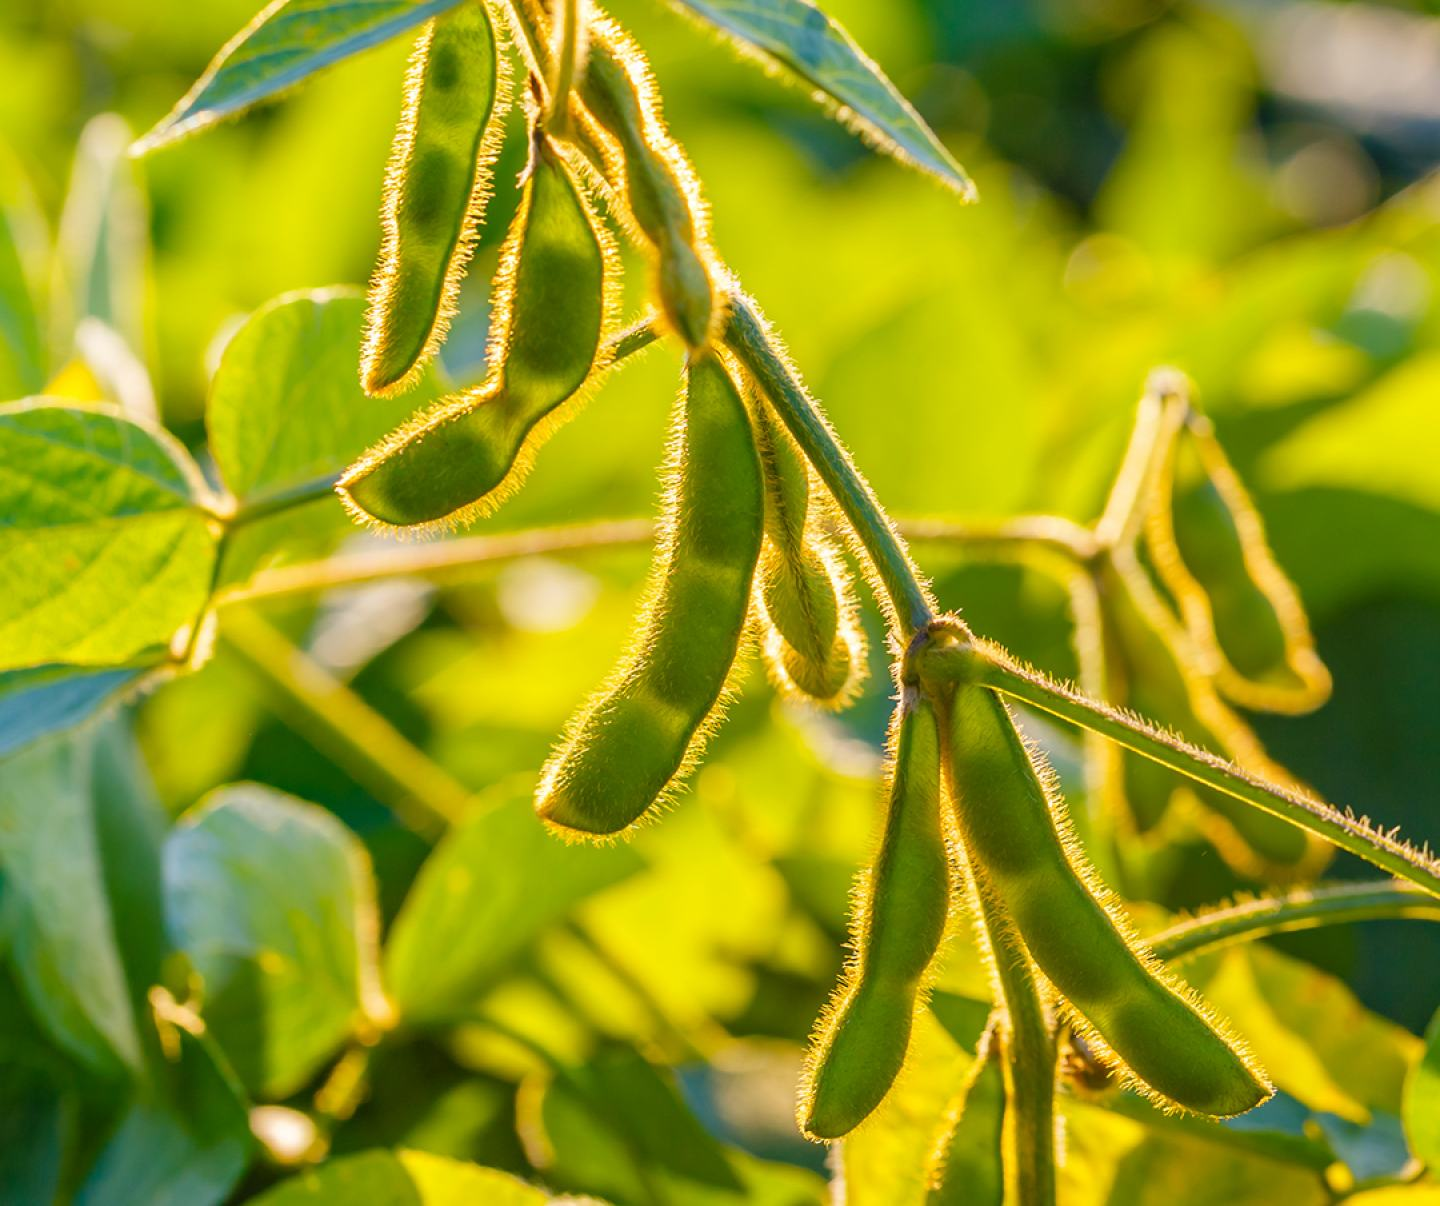 Close up of soybean pods